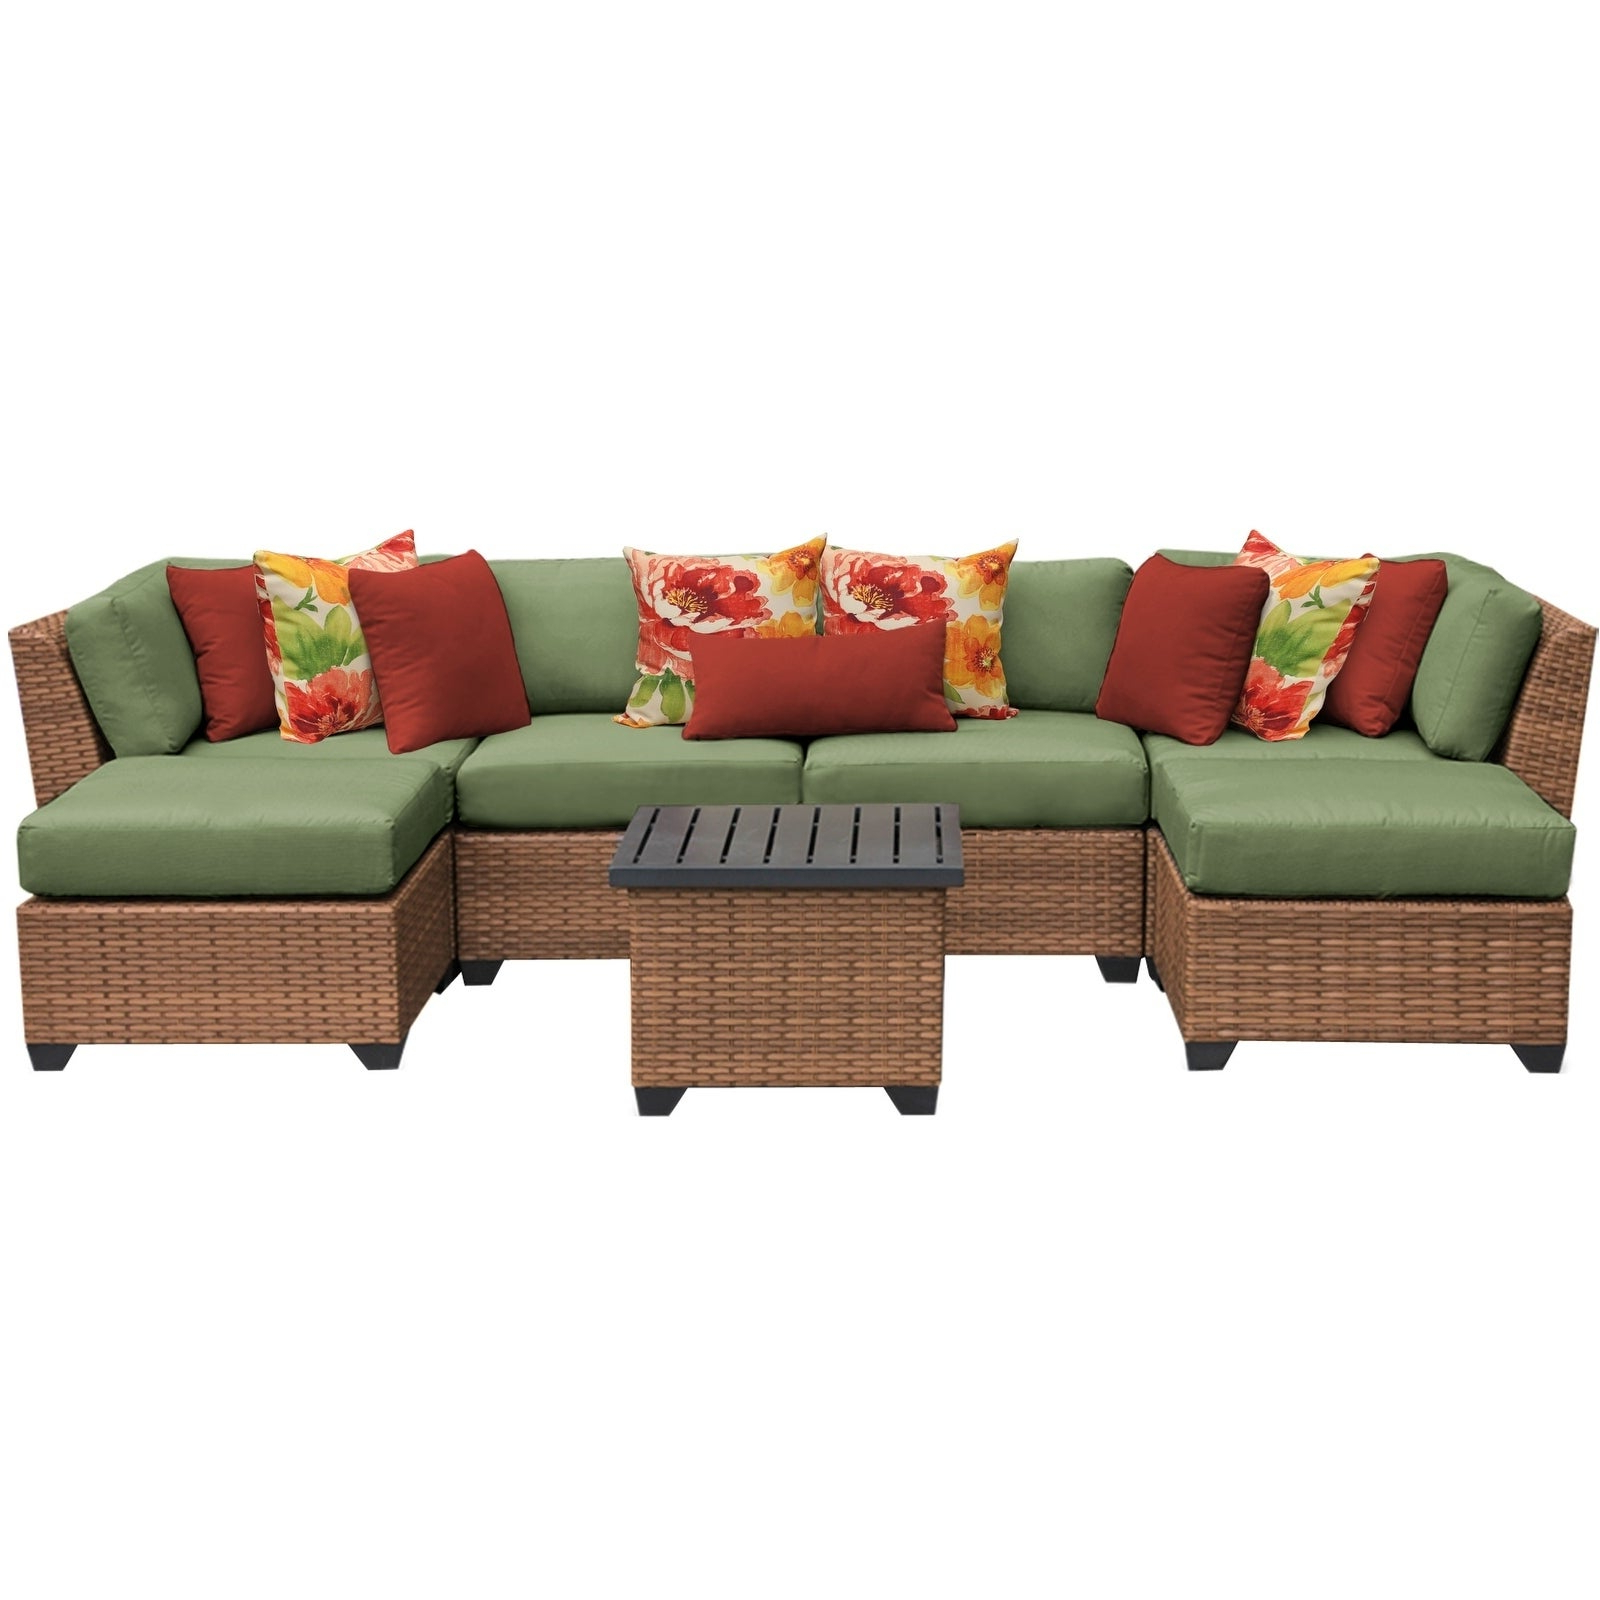 Laguna Outdoor Sofas With Cushions With Popular Laguna 7 Piece Outdoor Wicker Patio Furniture Set 07A (View 8 of 20)